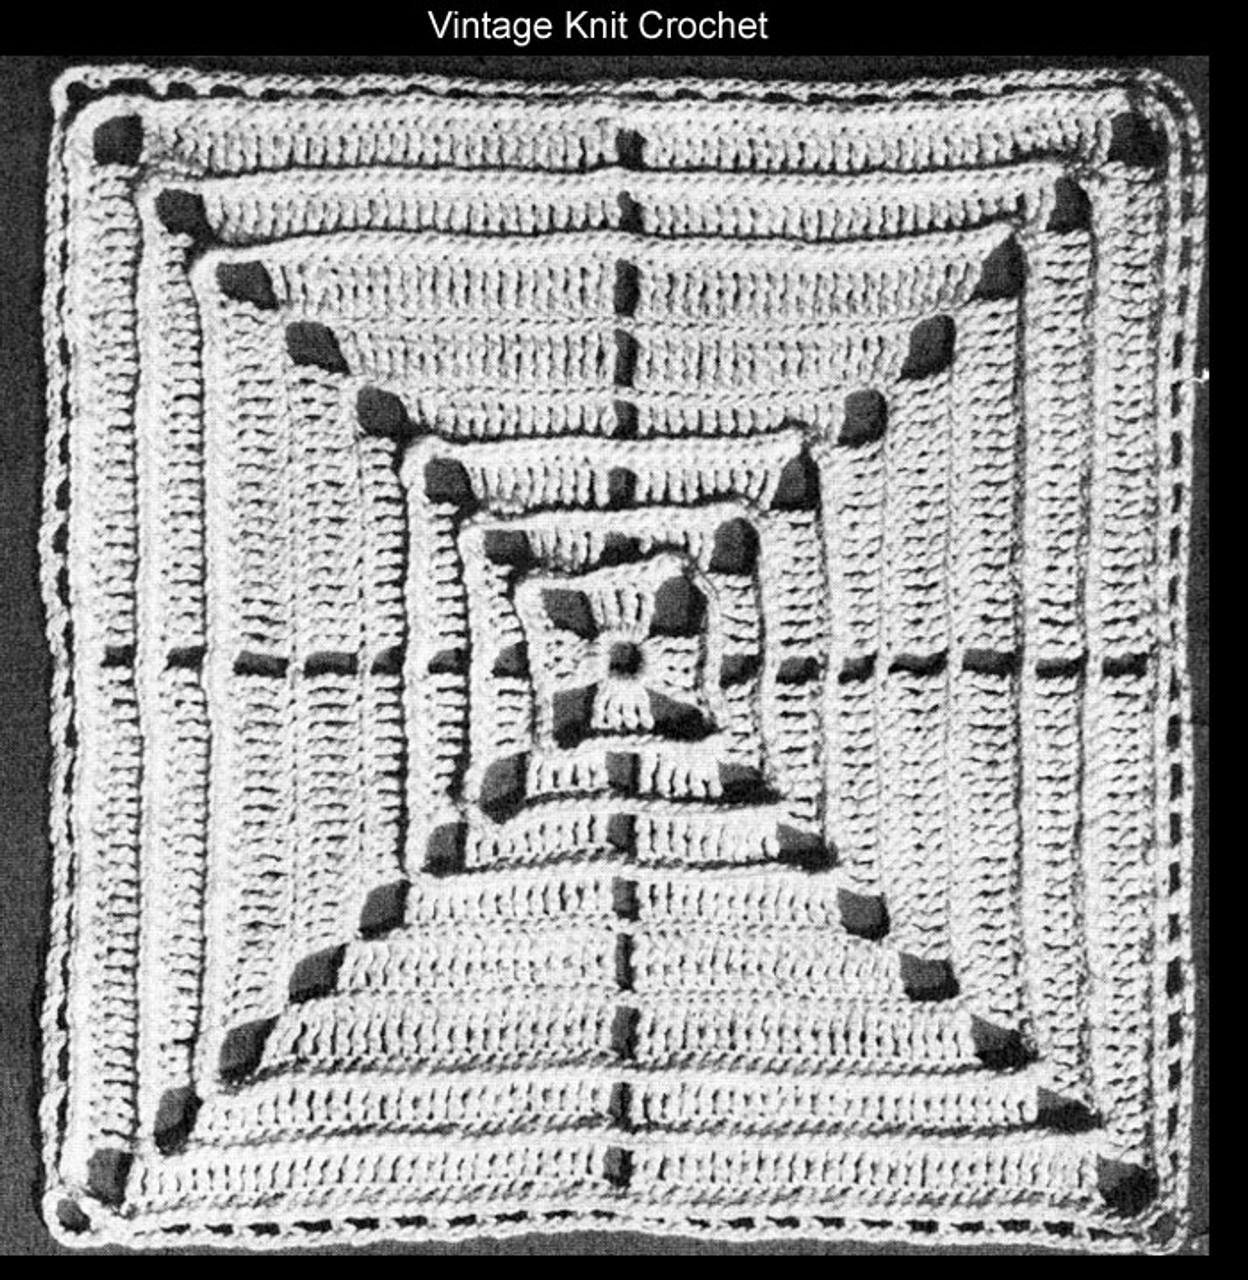 Crochet 8 inch square pattern illustration